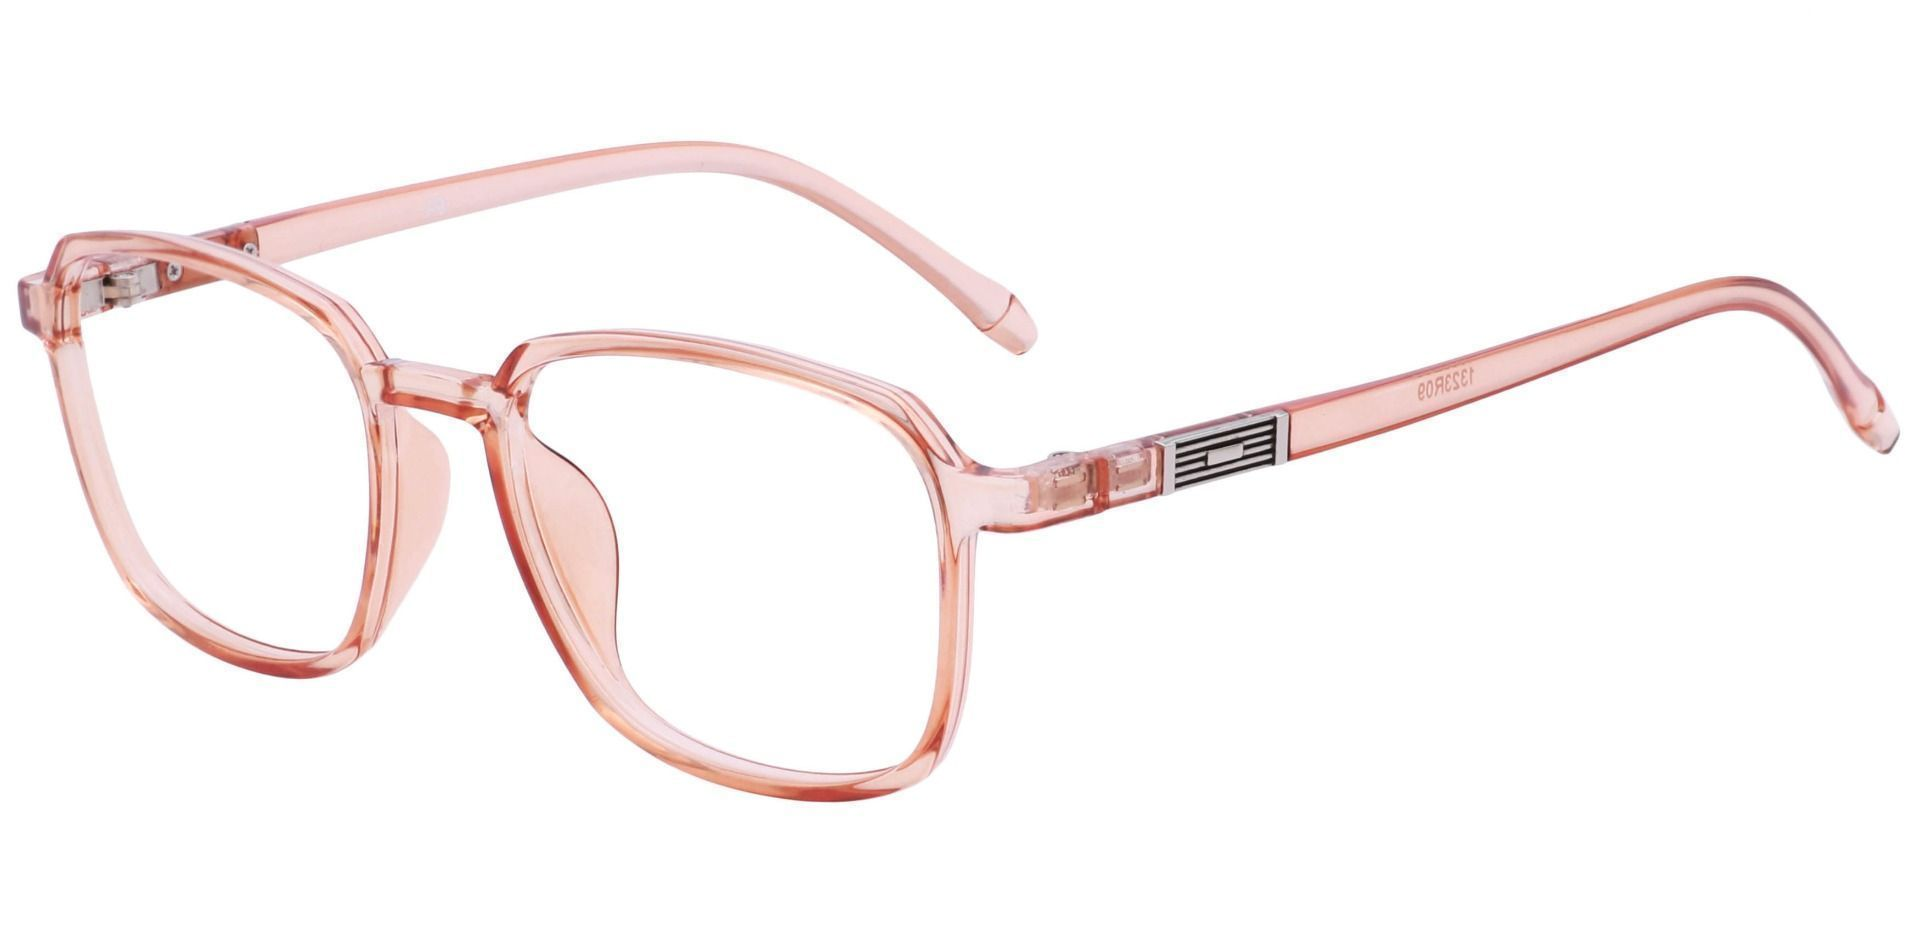 Stella Square Eyeglasses Frame - The Frame Is Red And Clear